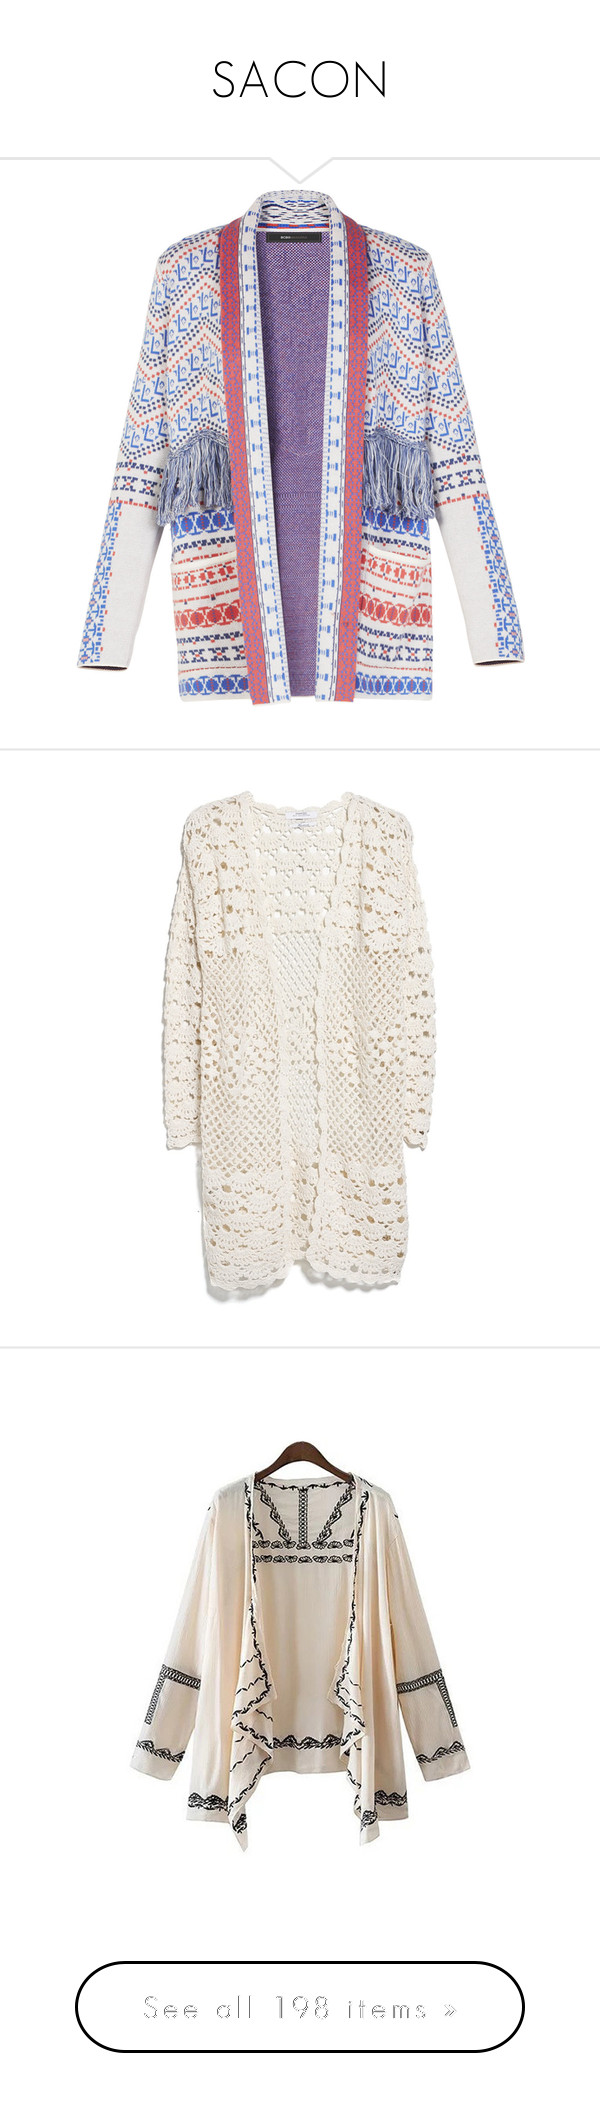 """""""SACON"""" by laumariborche on Polyvore featuring tops, cardigans, outerwear, jackets, blazers, open front cardigan, fringe cardigan, fringe top, cardigan top y shawl collar open front cardigan"""